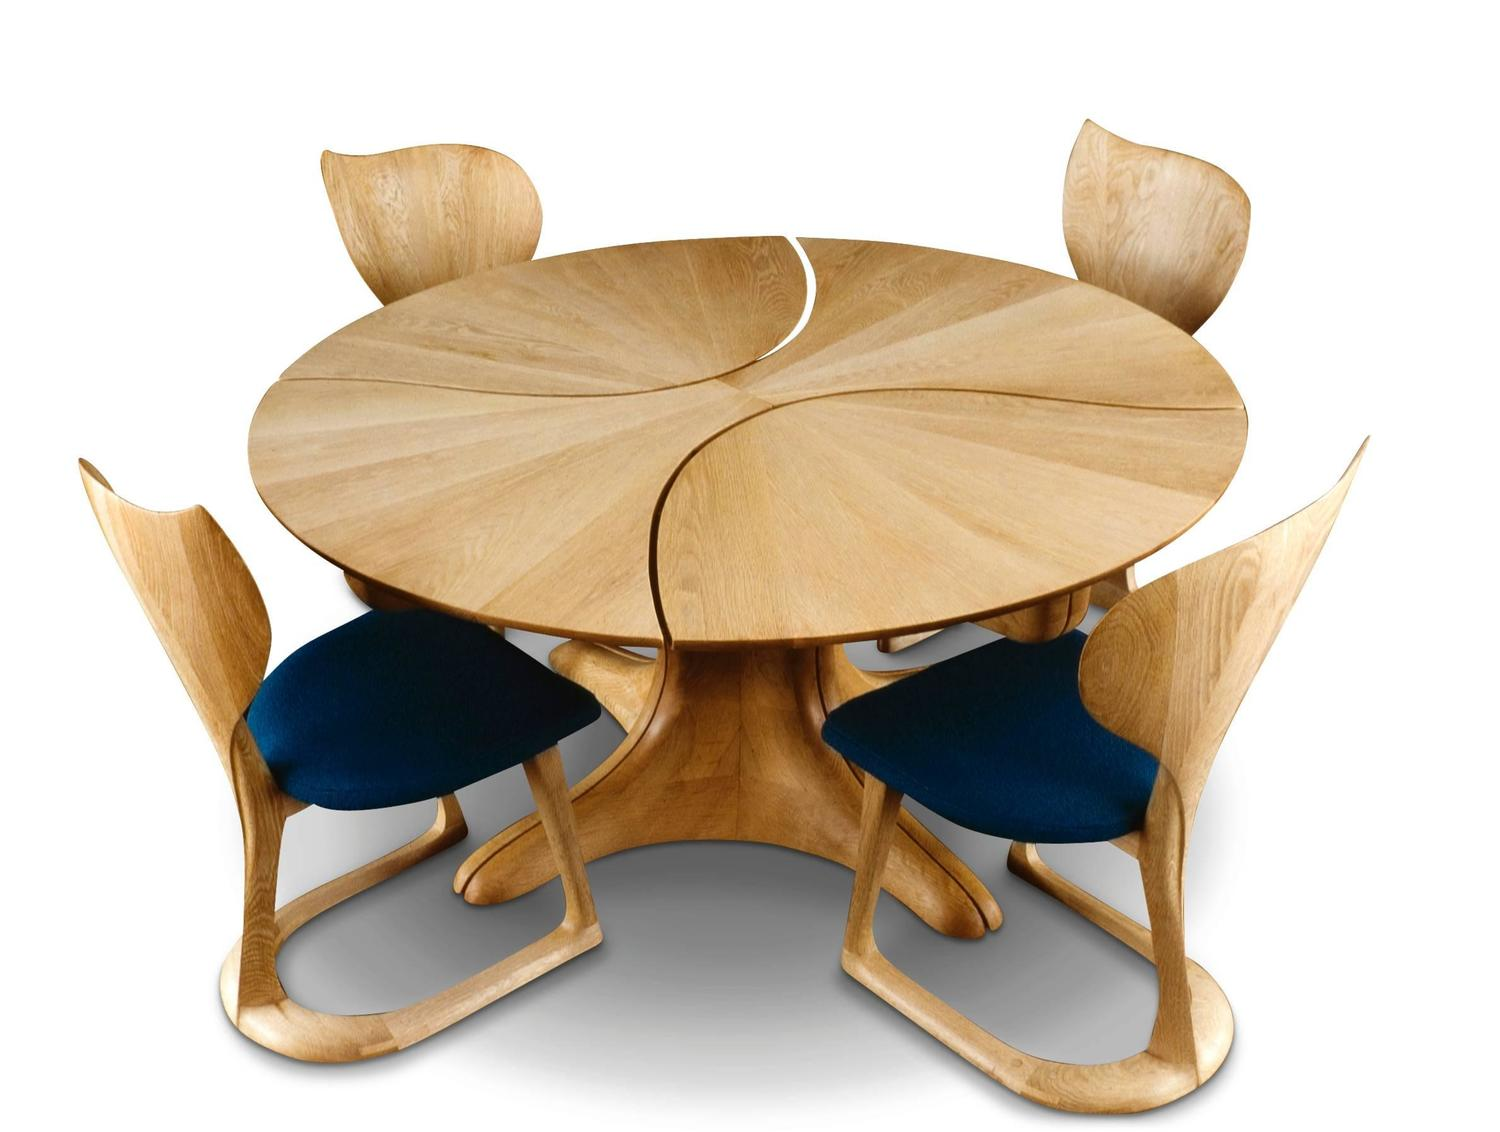 lily pad ii dining table designed 1982 for sale at 1stdibs